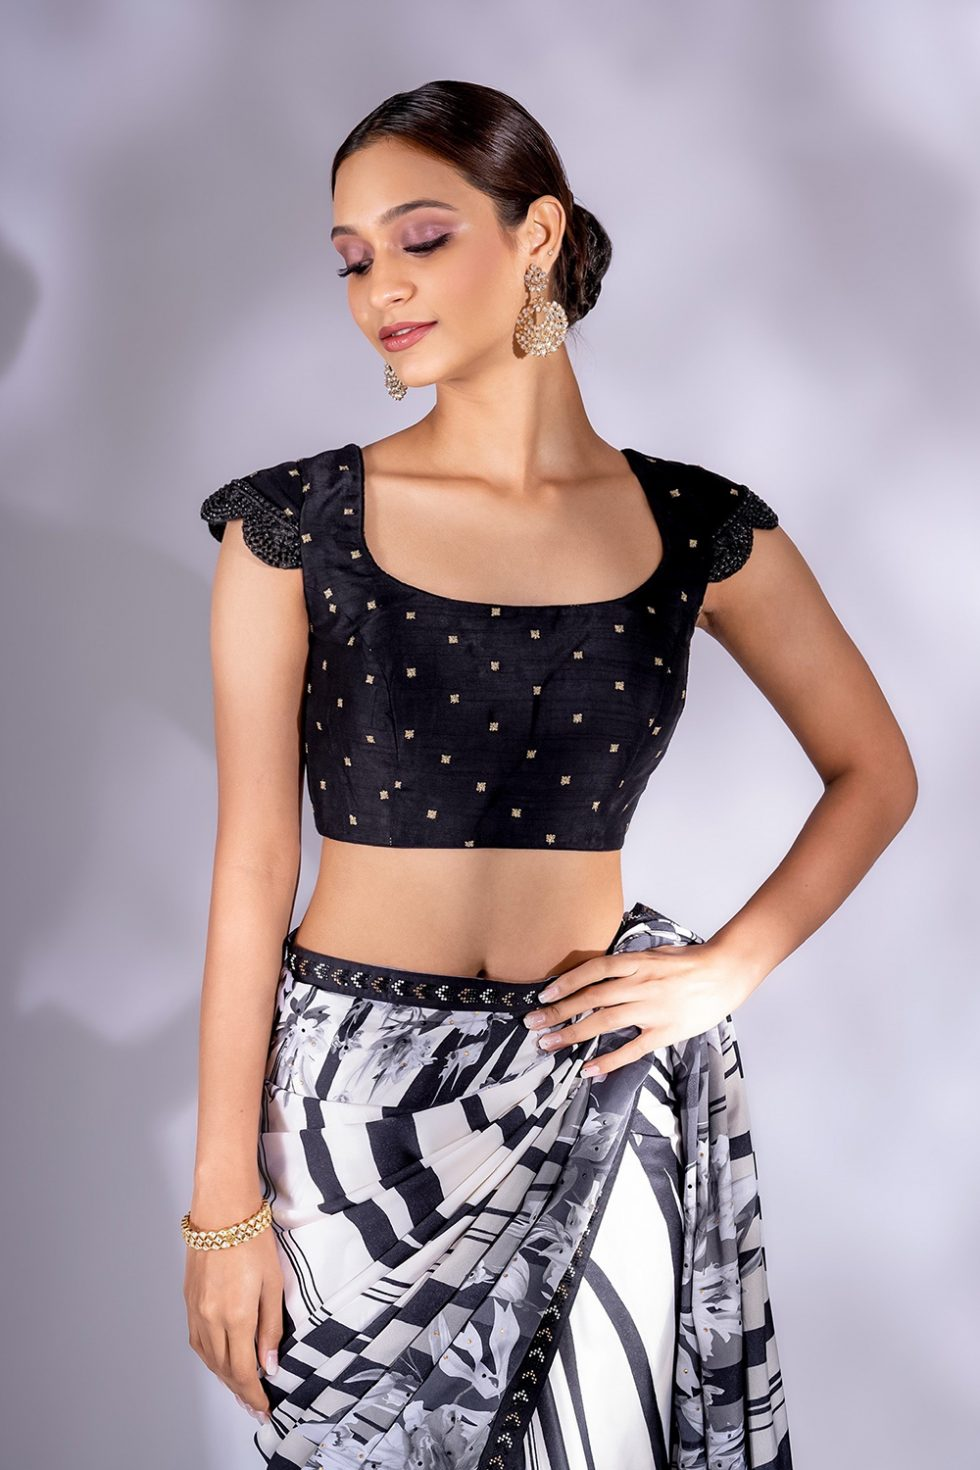 Raven black classic blouse with gold butis and scalloped sleeve detail.